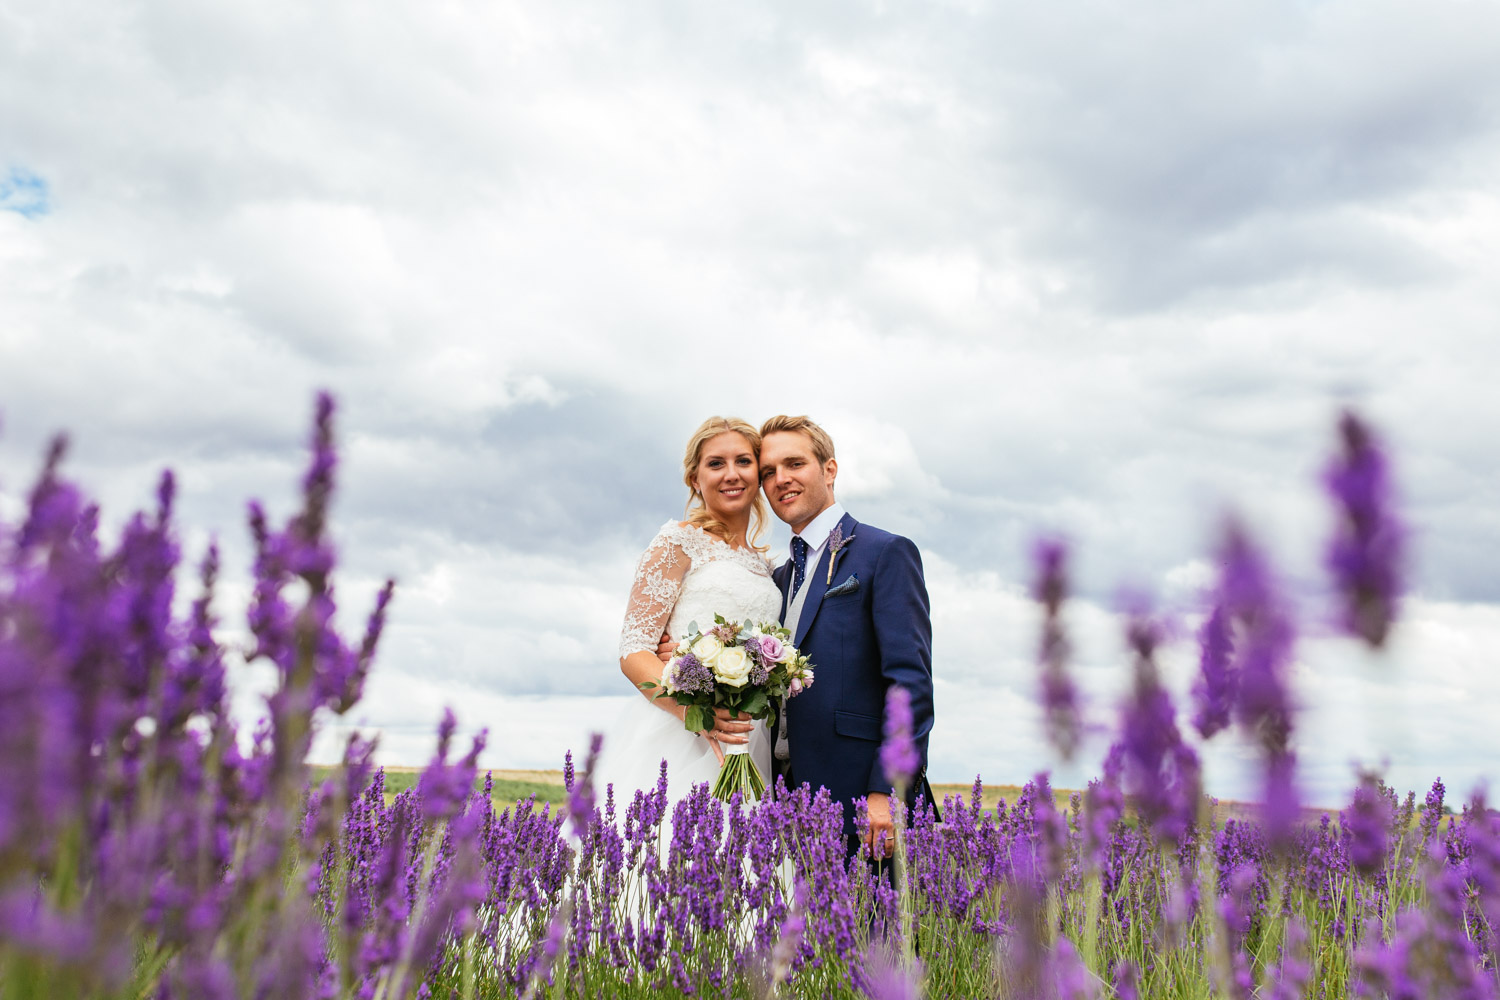 Faye-and-Tom-Wedding-Hitchin-Lavender-49.jpg